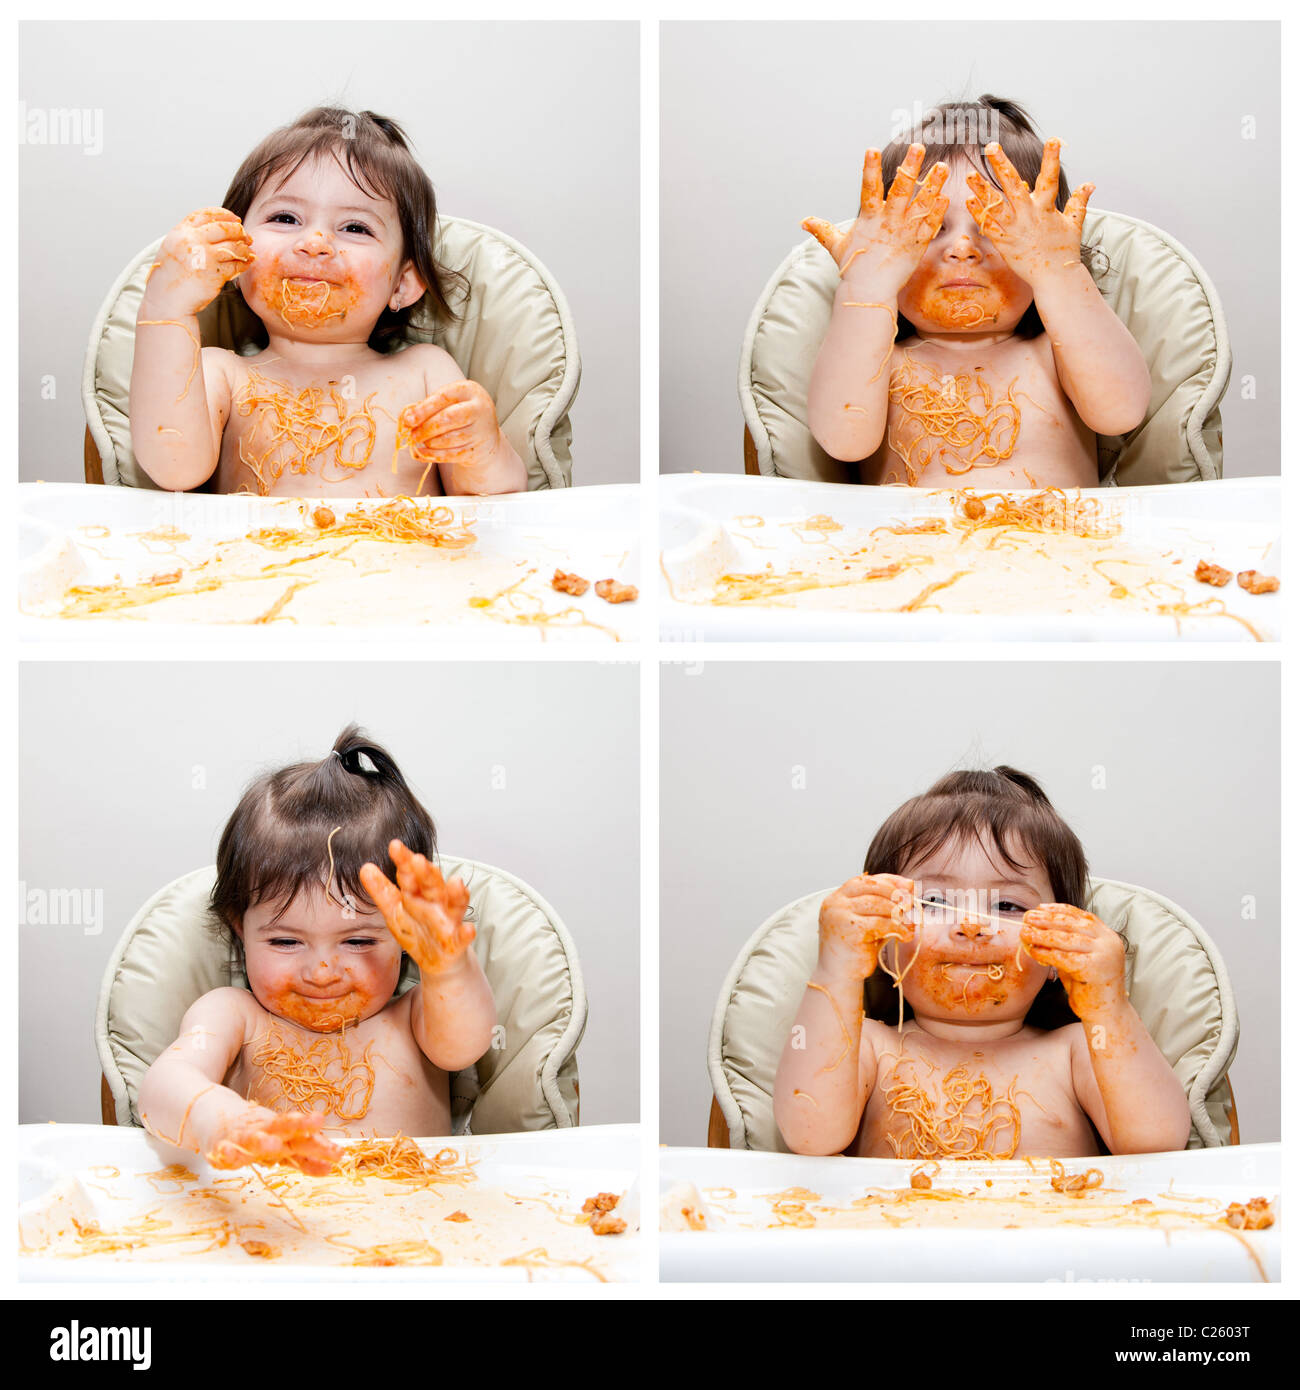 Happy baby having fun eating messy showing hands covered in Spaghetti Angel Hair Pasta red marinara tomato sauce. - Stock Image